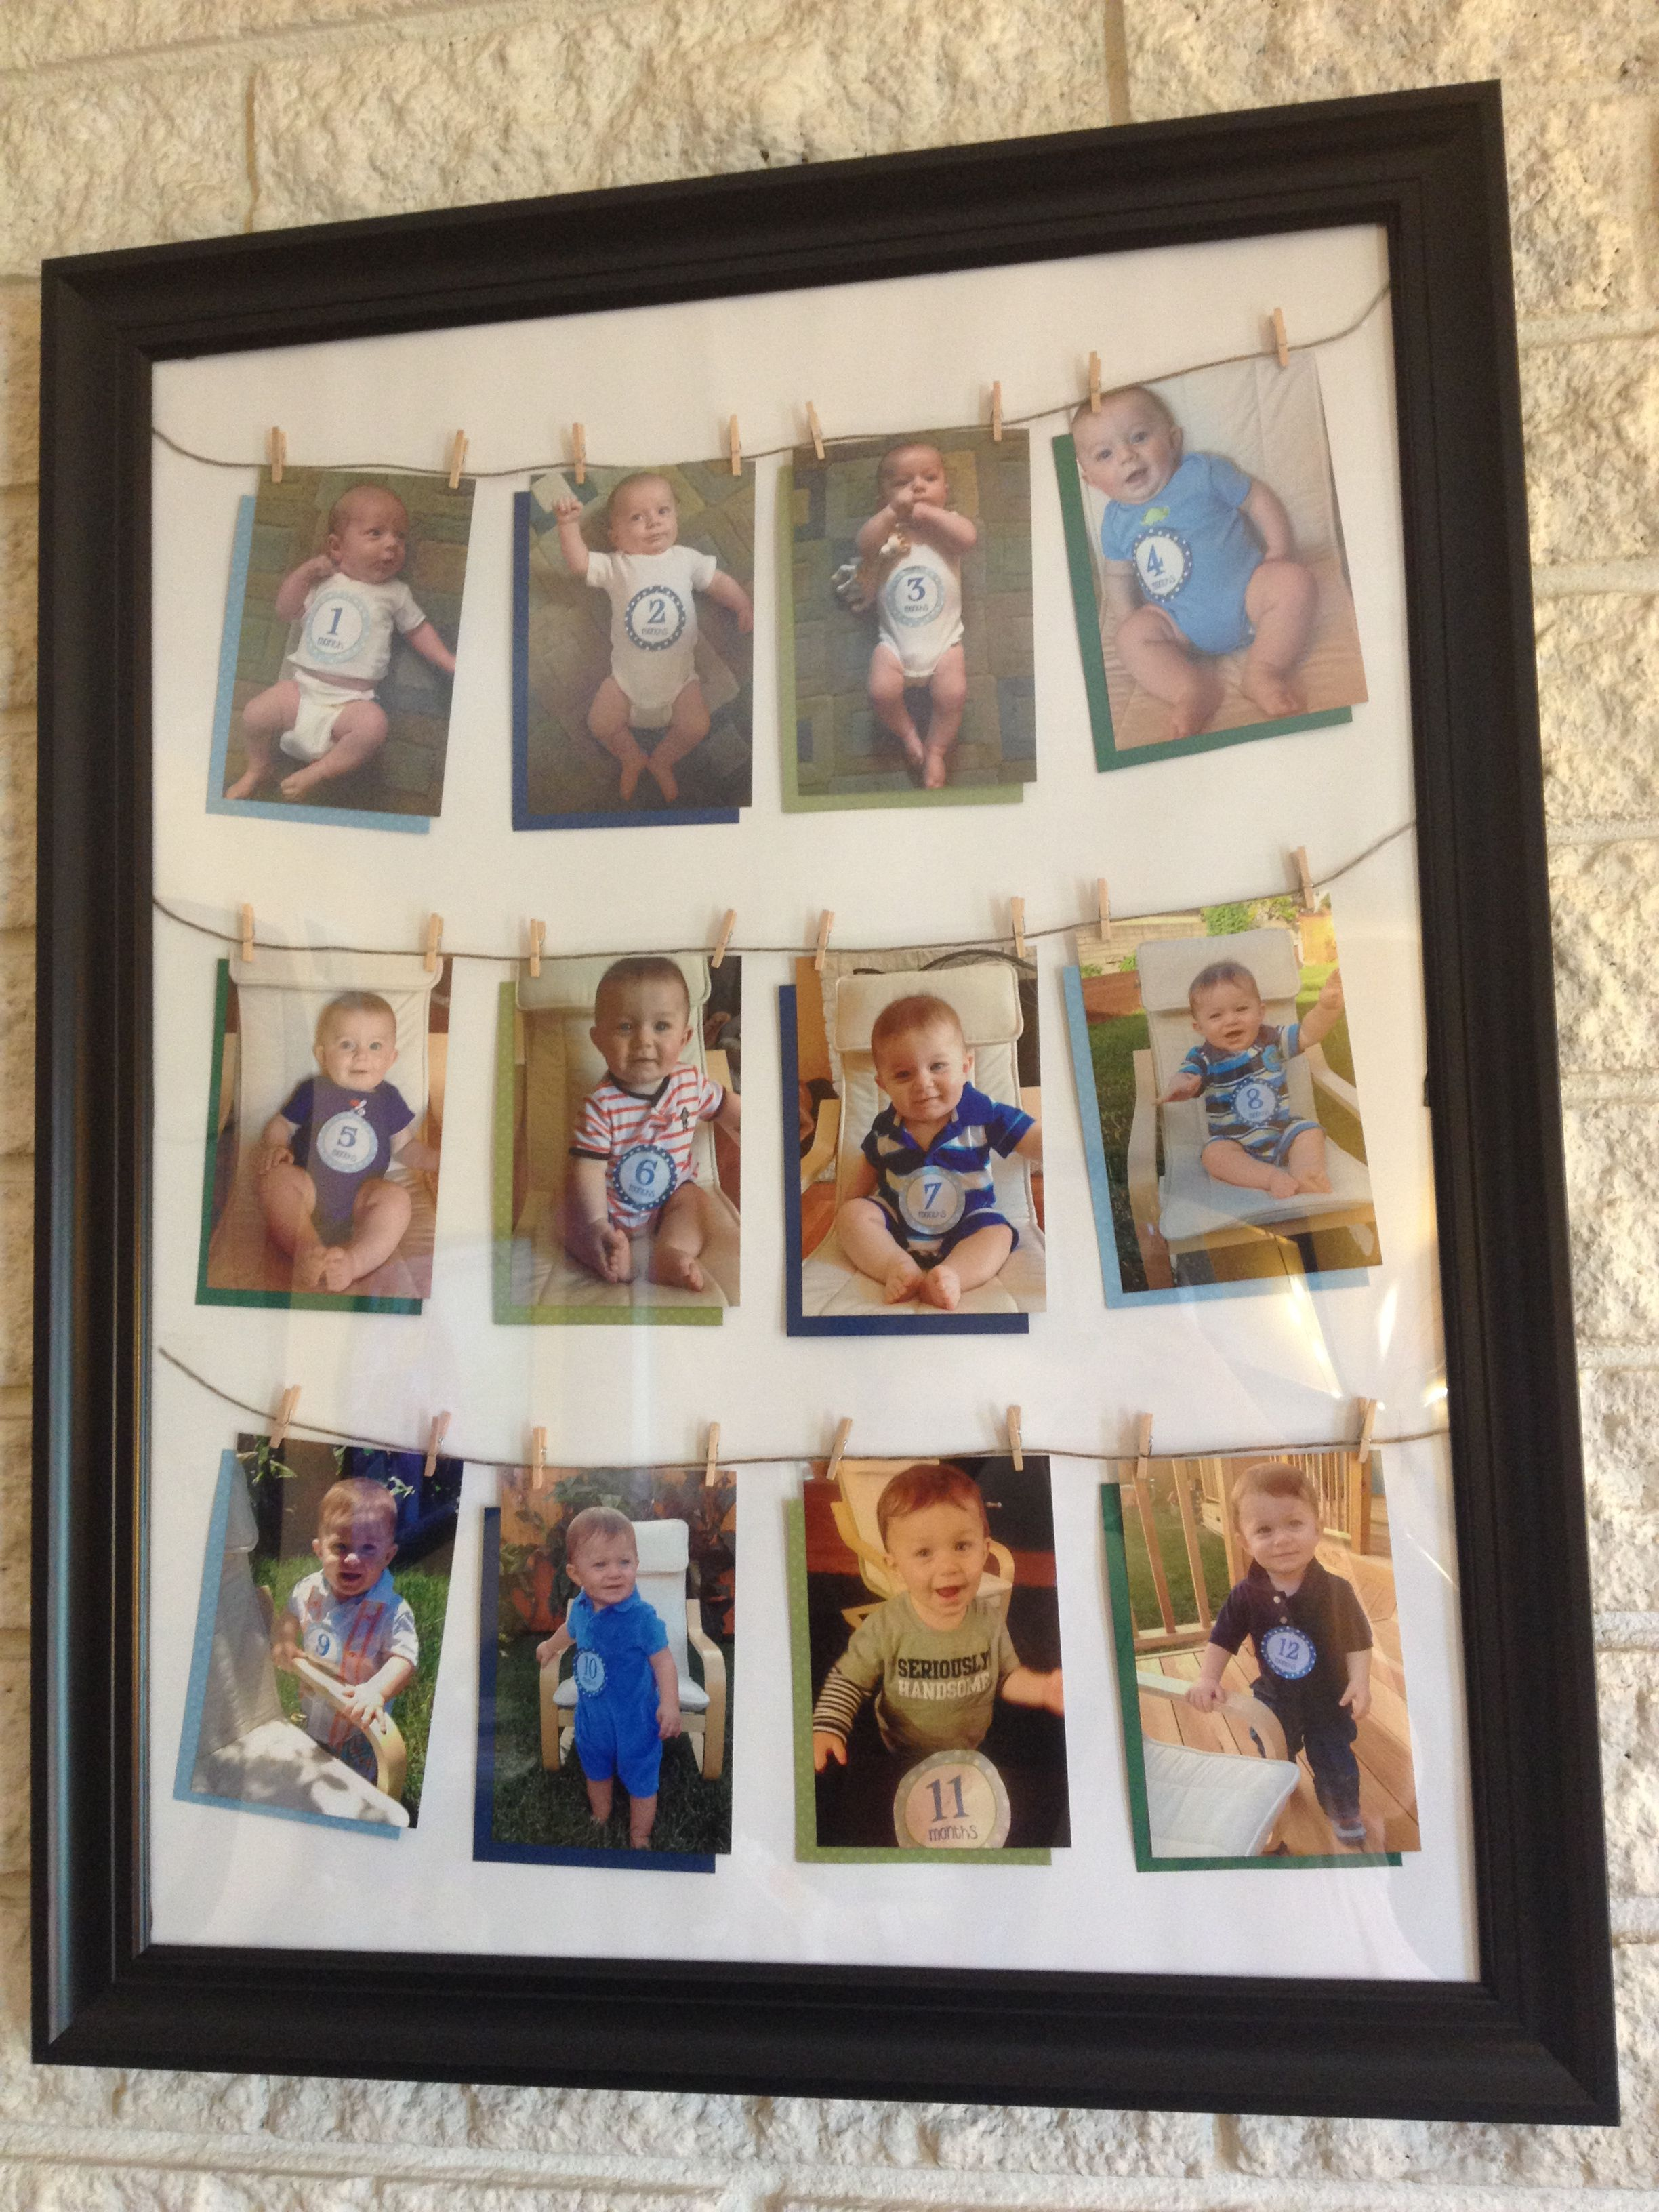 Month By Month Baby Picture Frame : month, picture, frame, Month, Photo, Display, Monthly, Photos, Display,, Birthday, Picture, Displays,, Displays